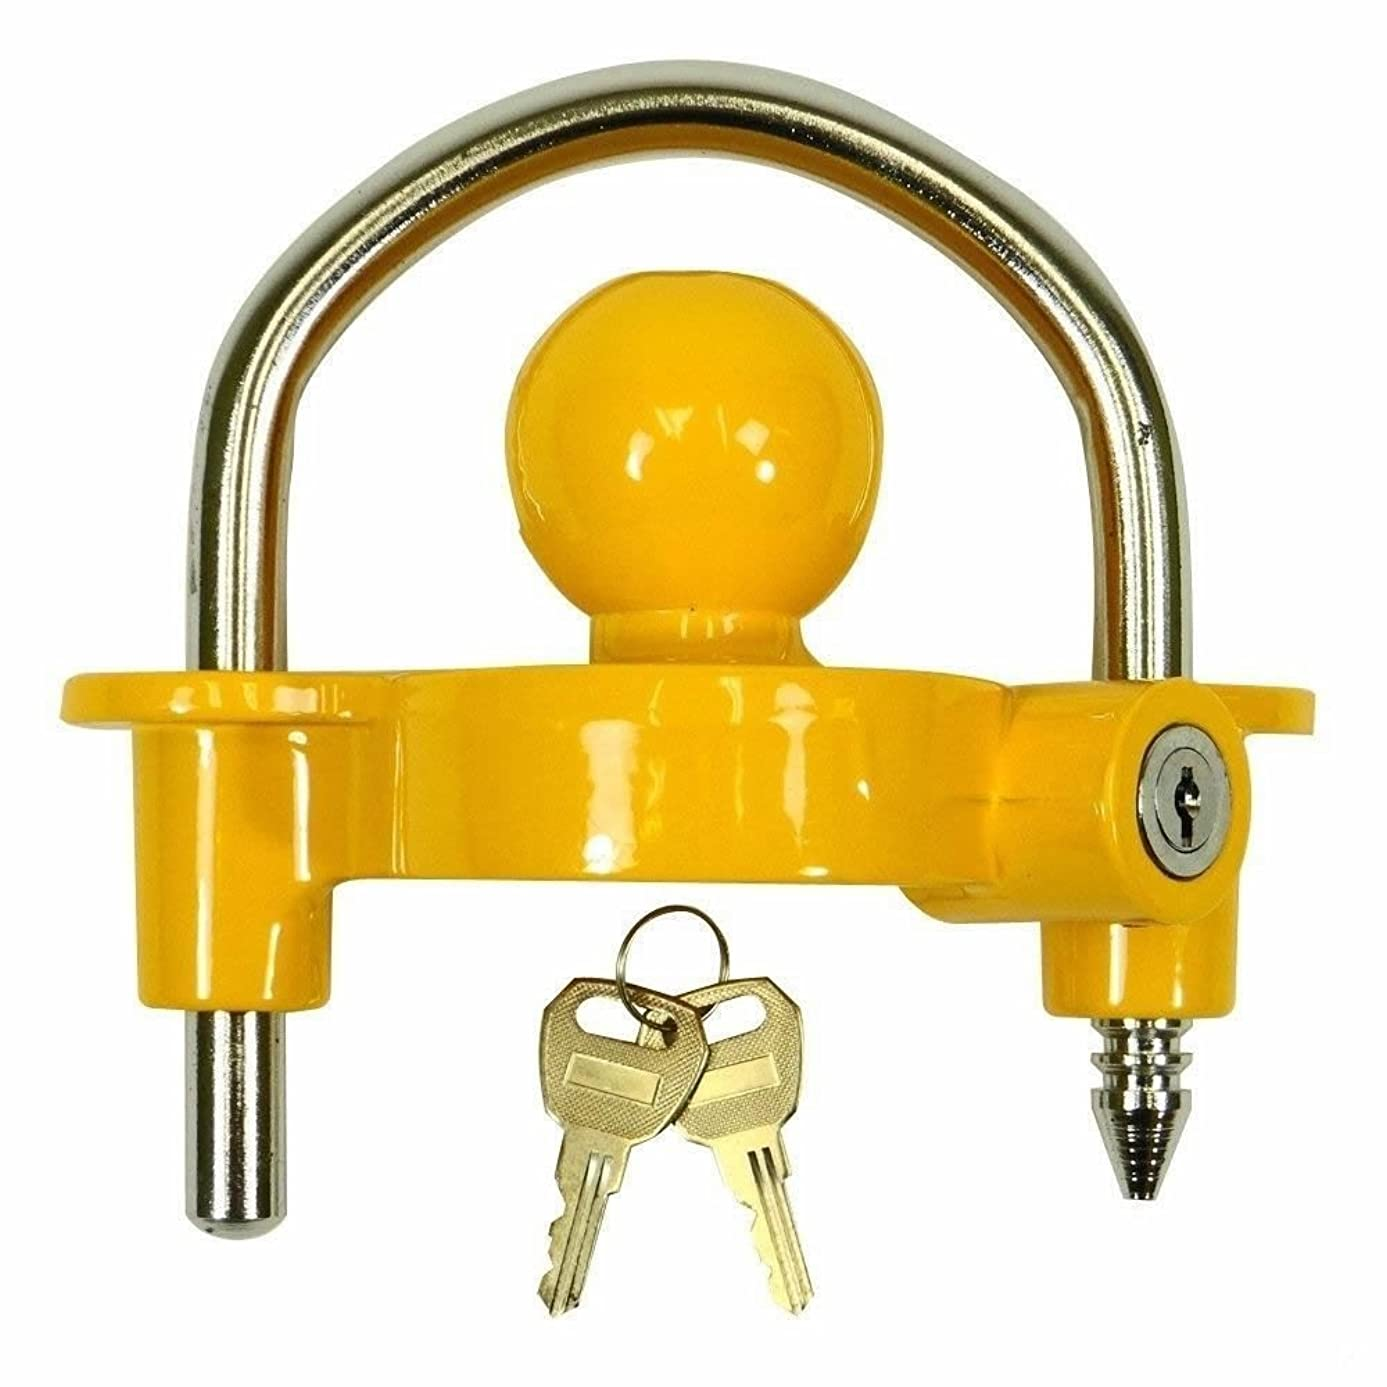 Universal Trailer Hitch Ball Coupler Lock Out Trailor Tongue Tounge Lockout